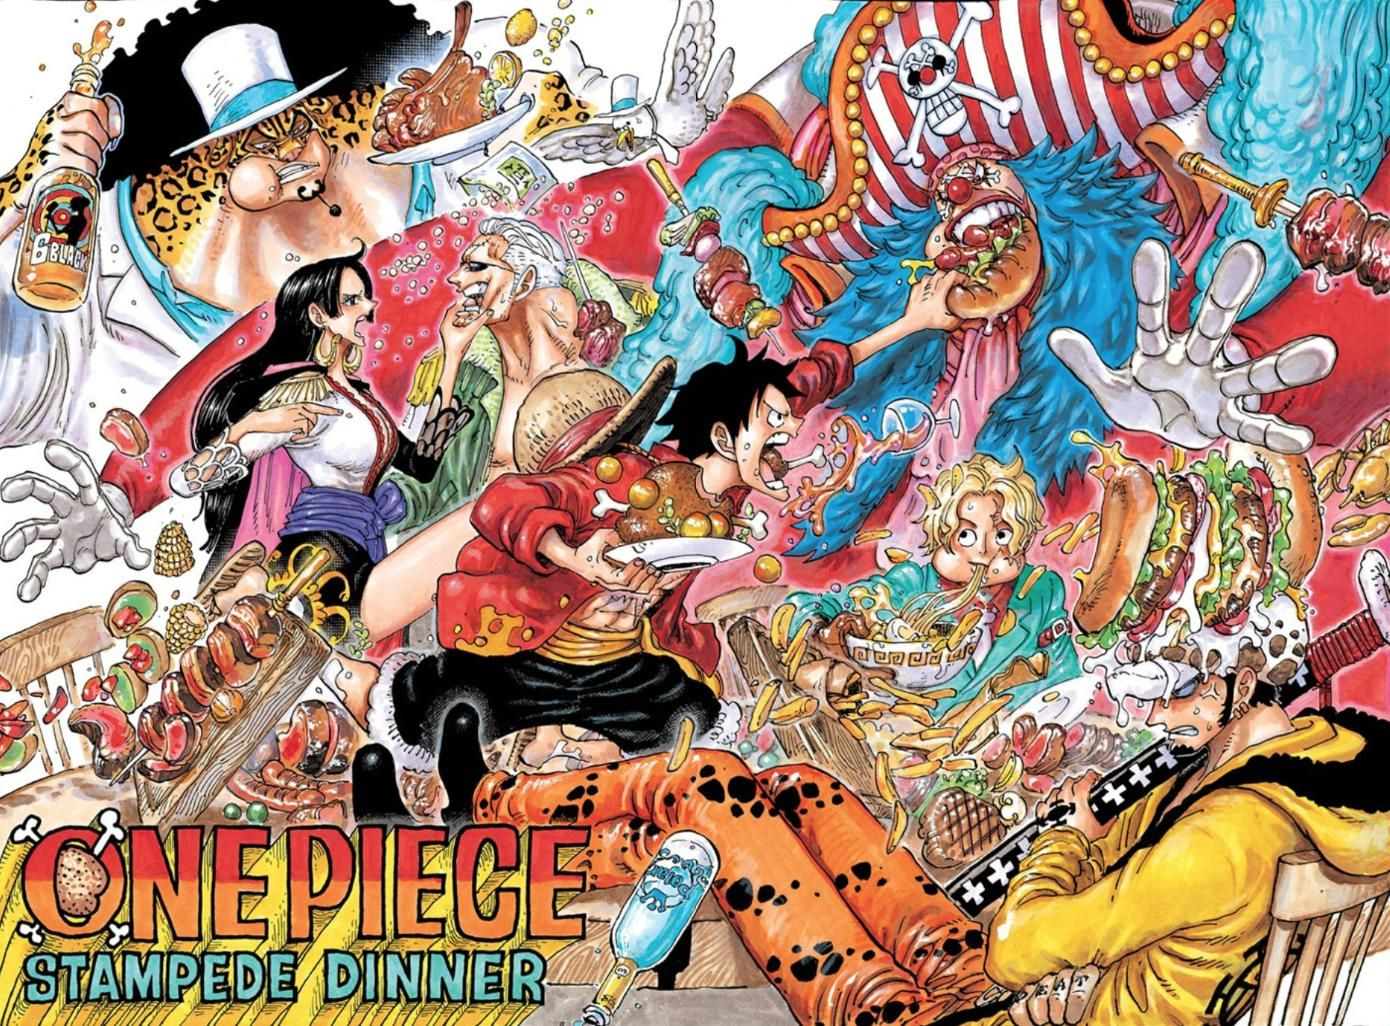 the one piece podcast on twitter onepiece イラスト イラスト ワンピース 扉絵